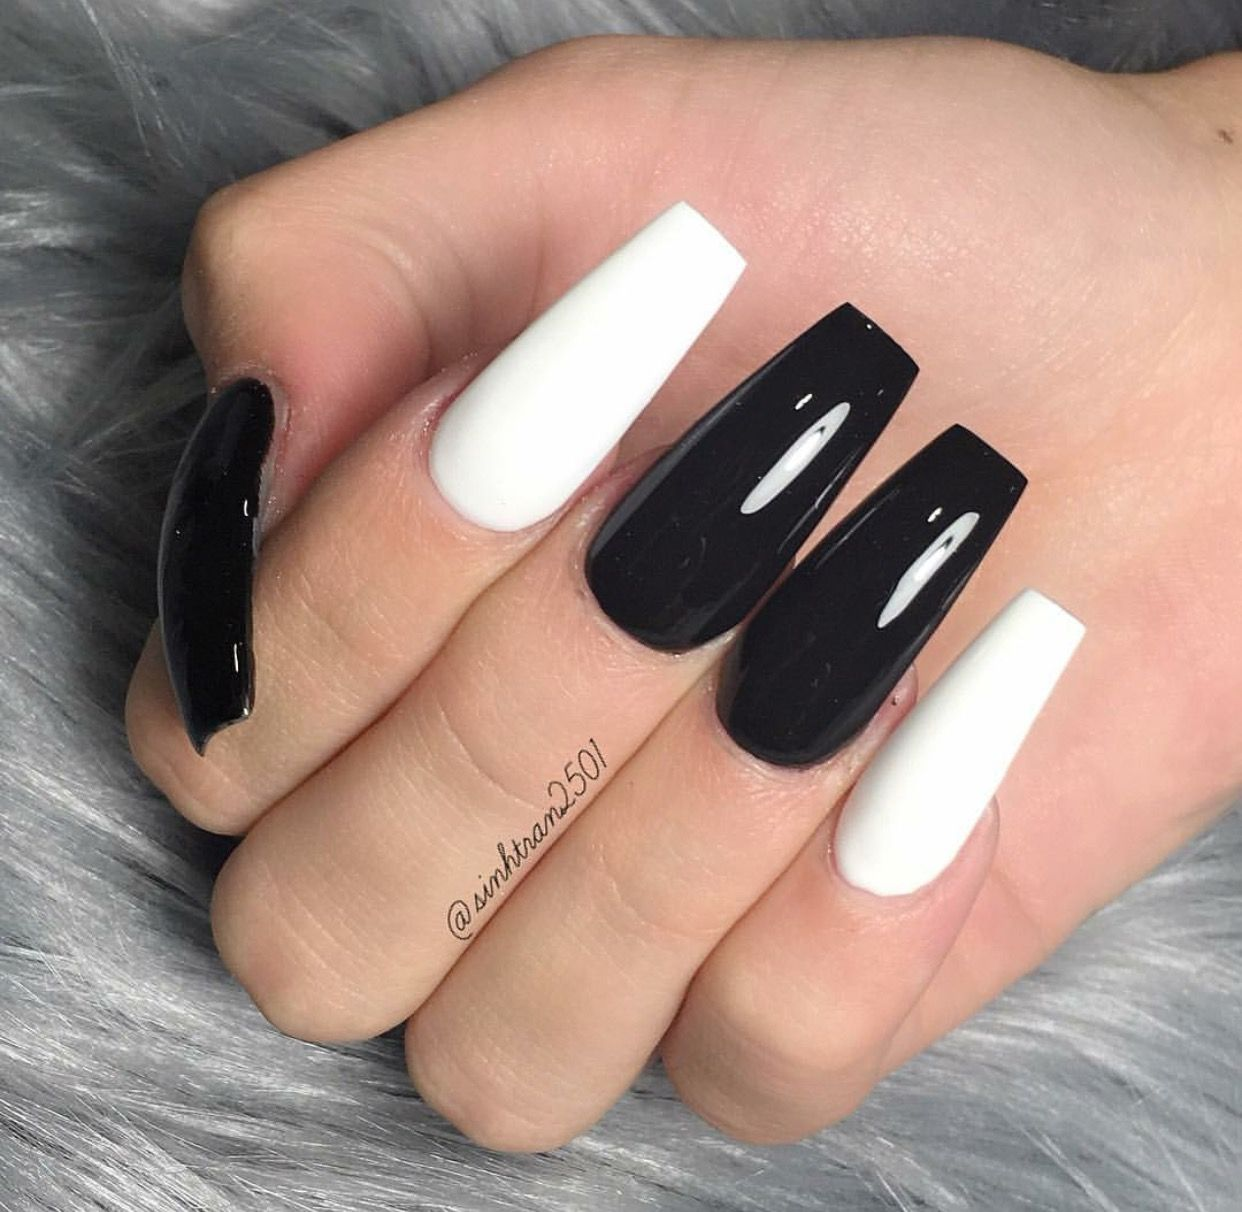 Hair Nails And Style Sinhtran Purple Acrylic Nails Acrylic Nails Coffin Pink Acrylic Nails Coffin Short